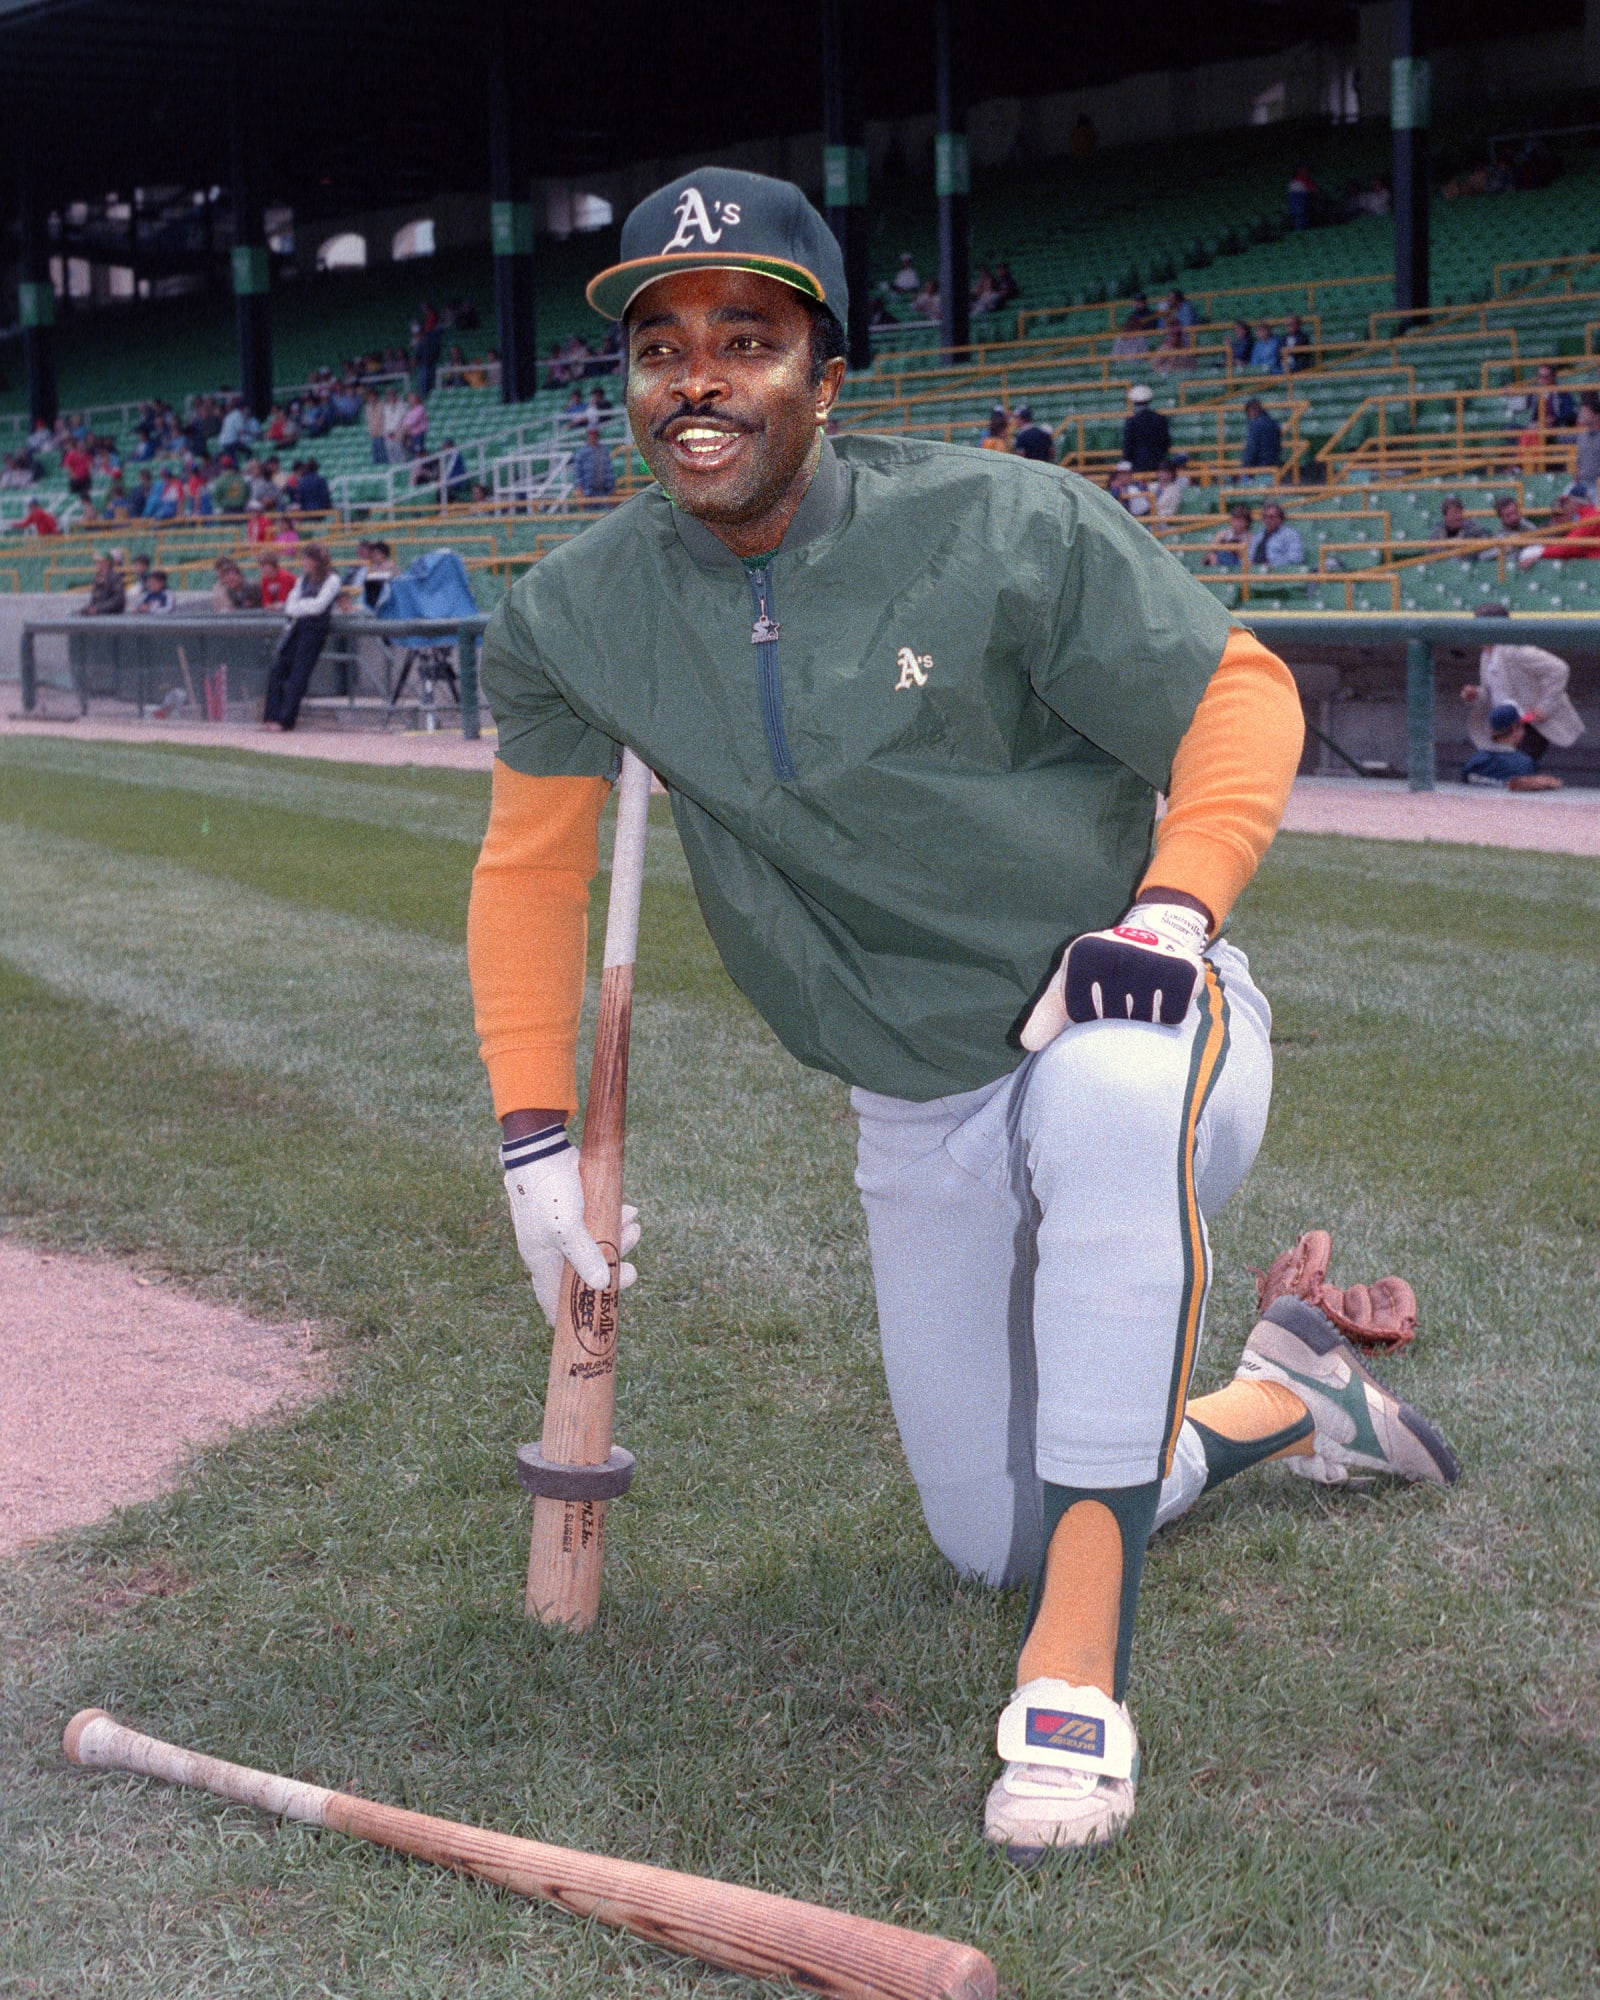 Five Historic Oakland A's Players We Have Forgotten About